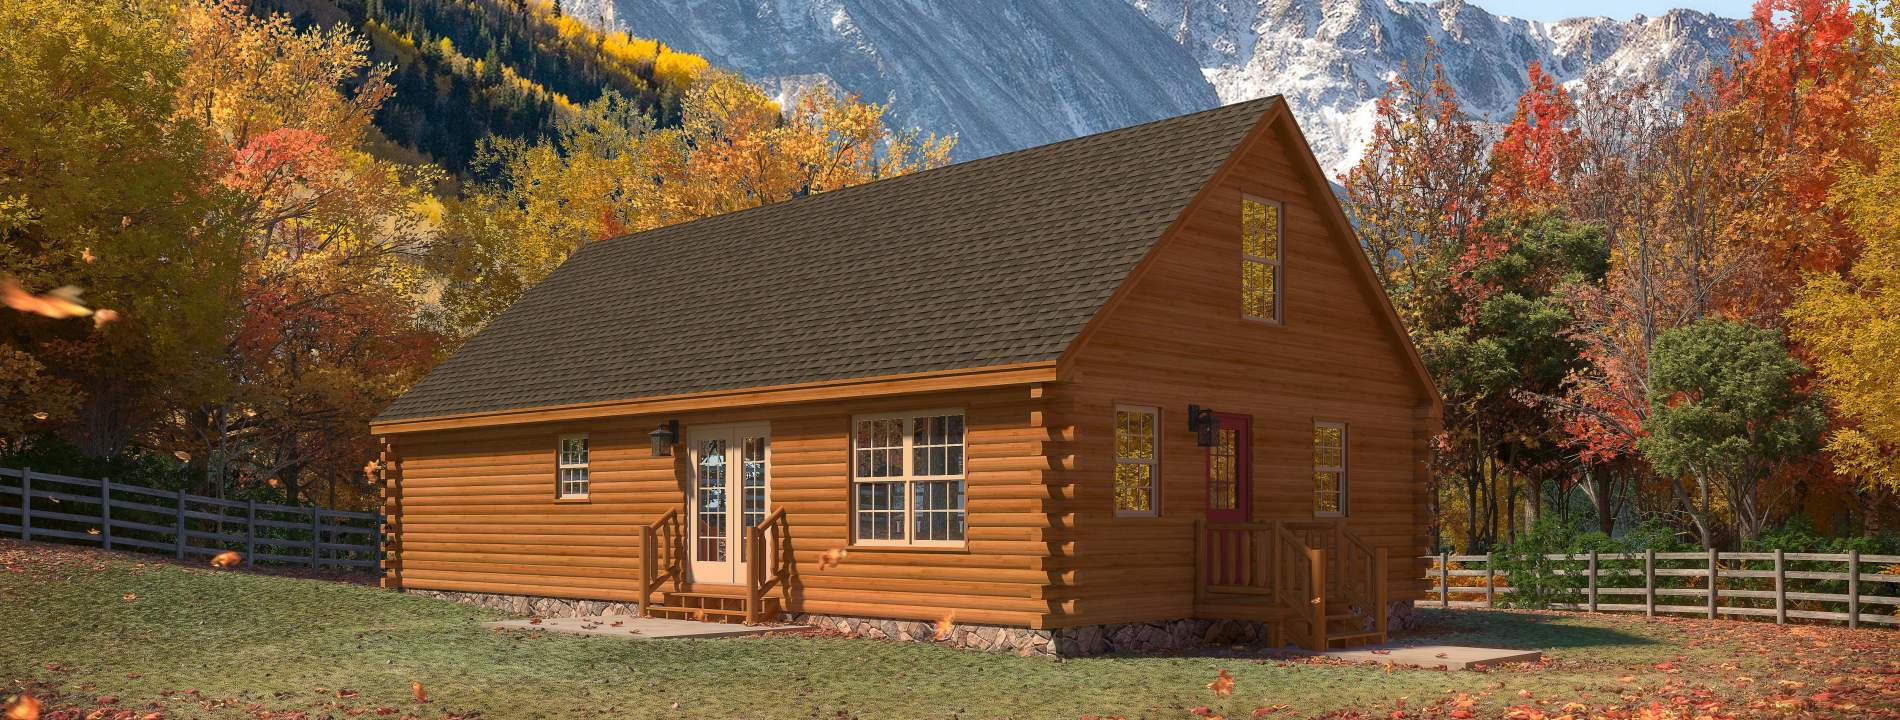 The Timberline Log Cabin